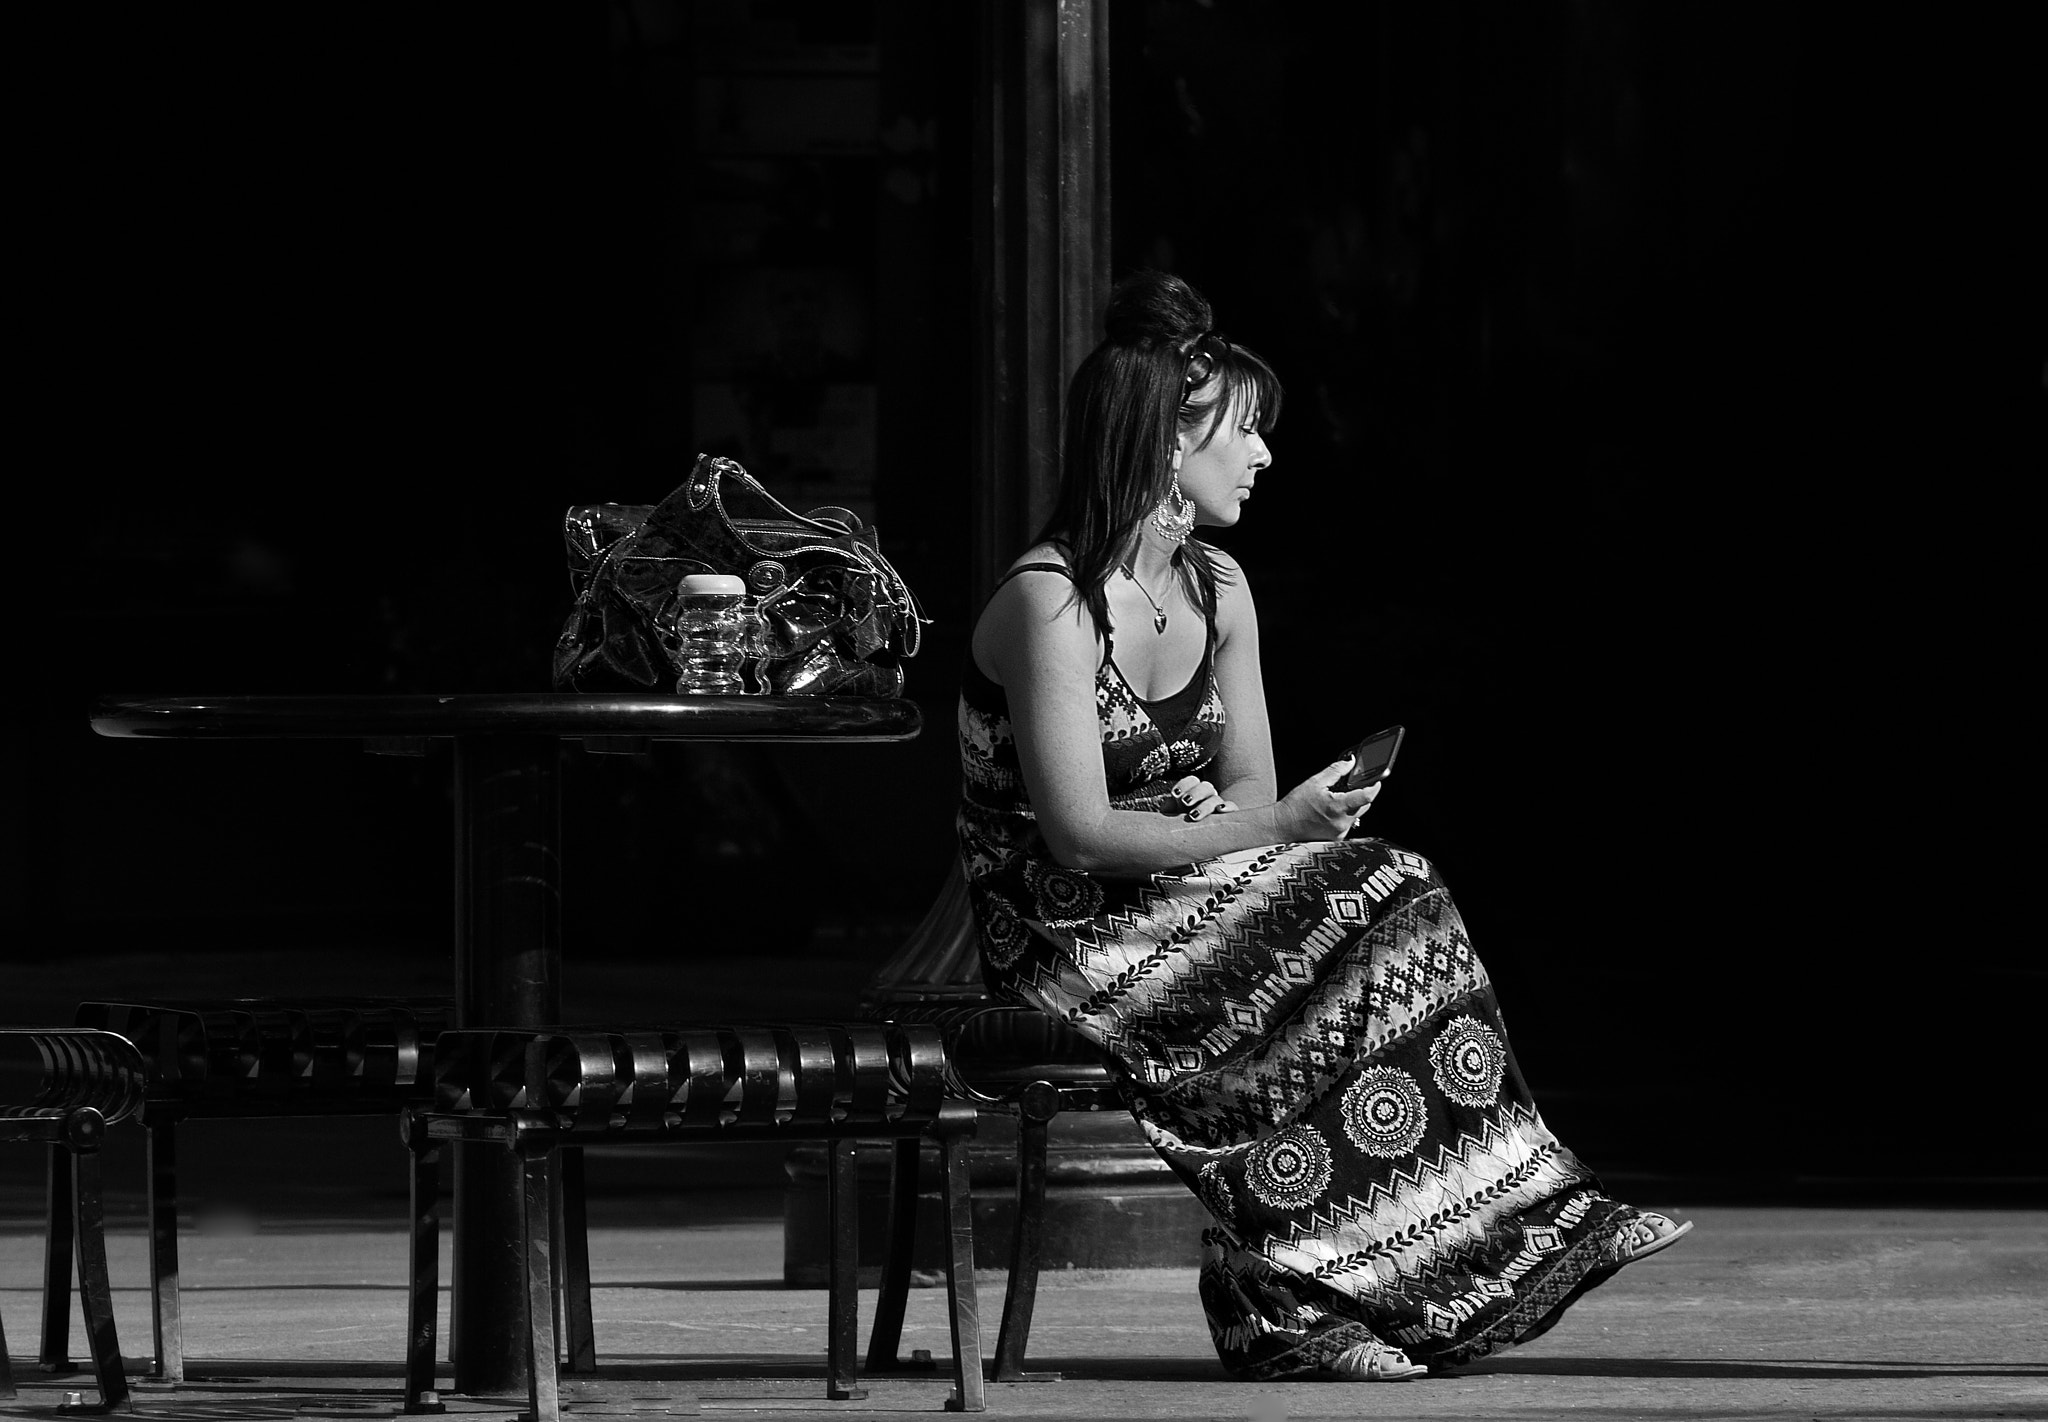 Photograph Lady In Waiting by Marie Lydia on 500px